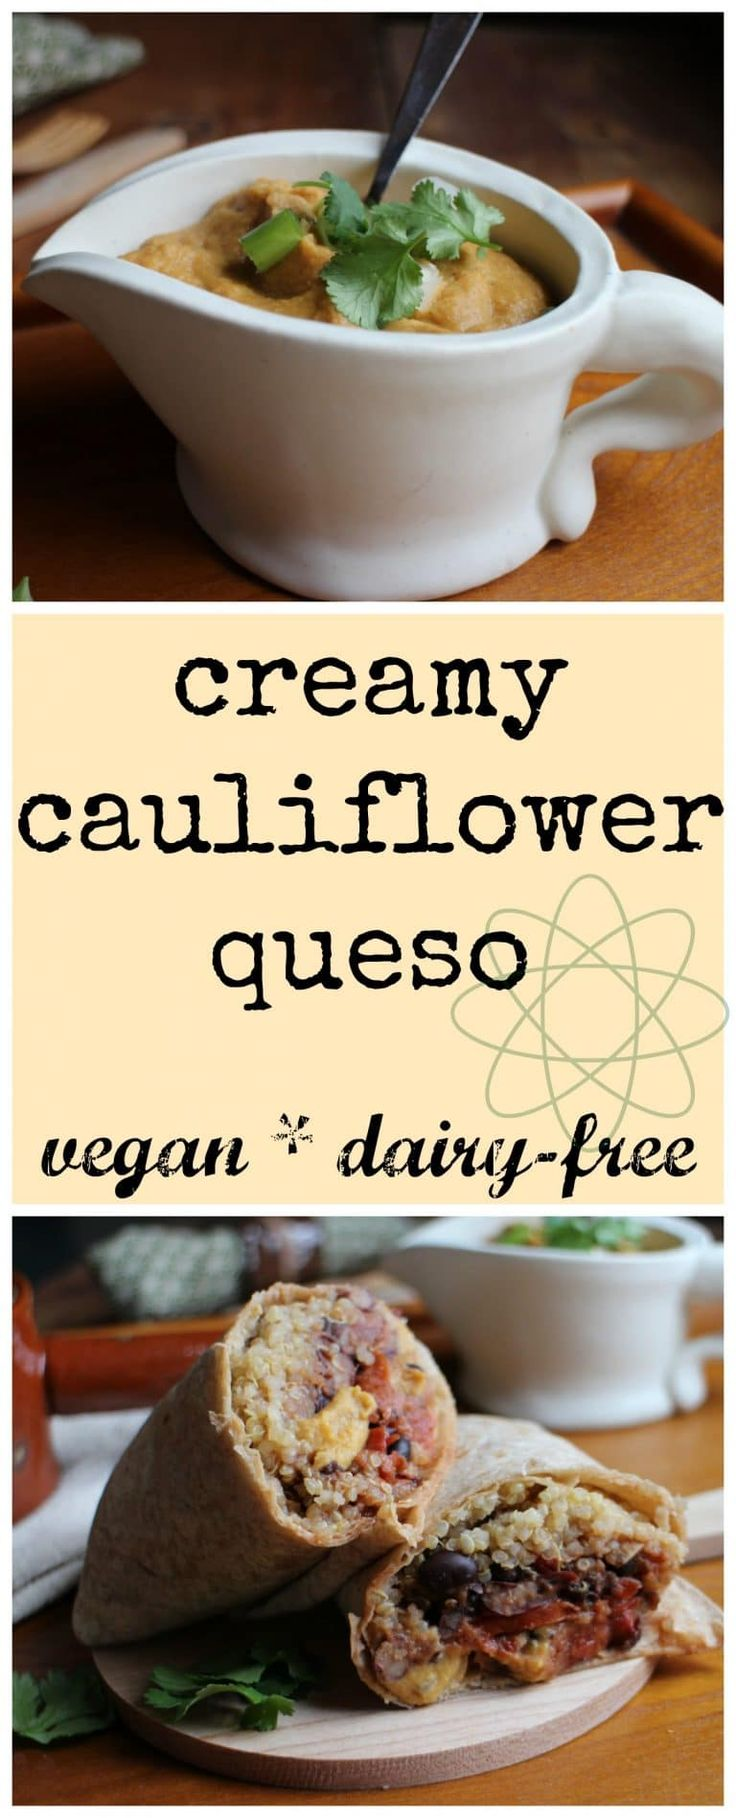 Creamy cauliflower queso: This protein-packed queso is entirely vegan & dairy-free. It gets its creaminess from cauliflower & white beans. | cadryskitchen.com #vegan #veganrecipes #VeganCheese #appetizer